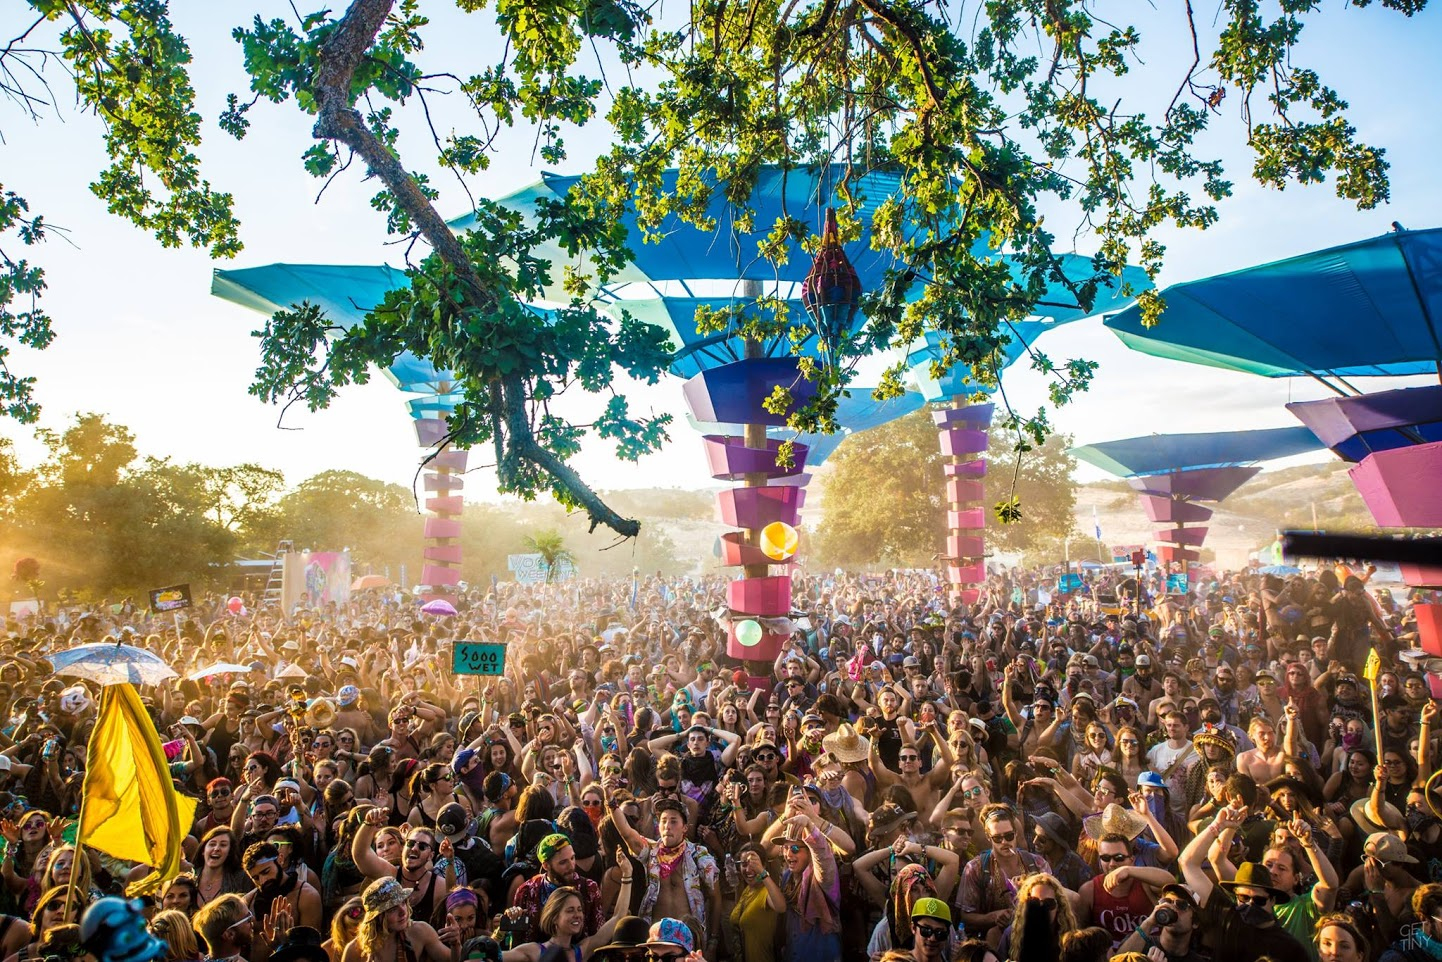 The DoLab Wants You to Boogie at the Woogie Weekend Festival